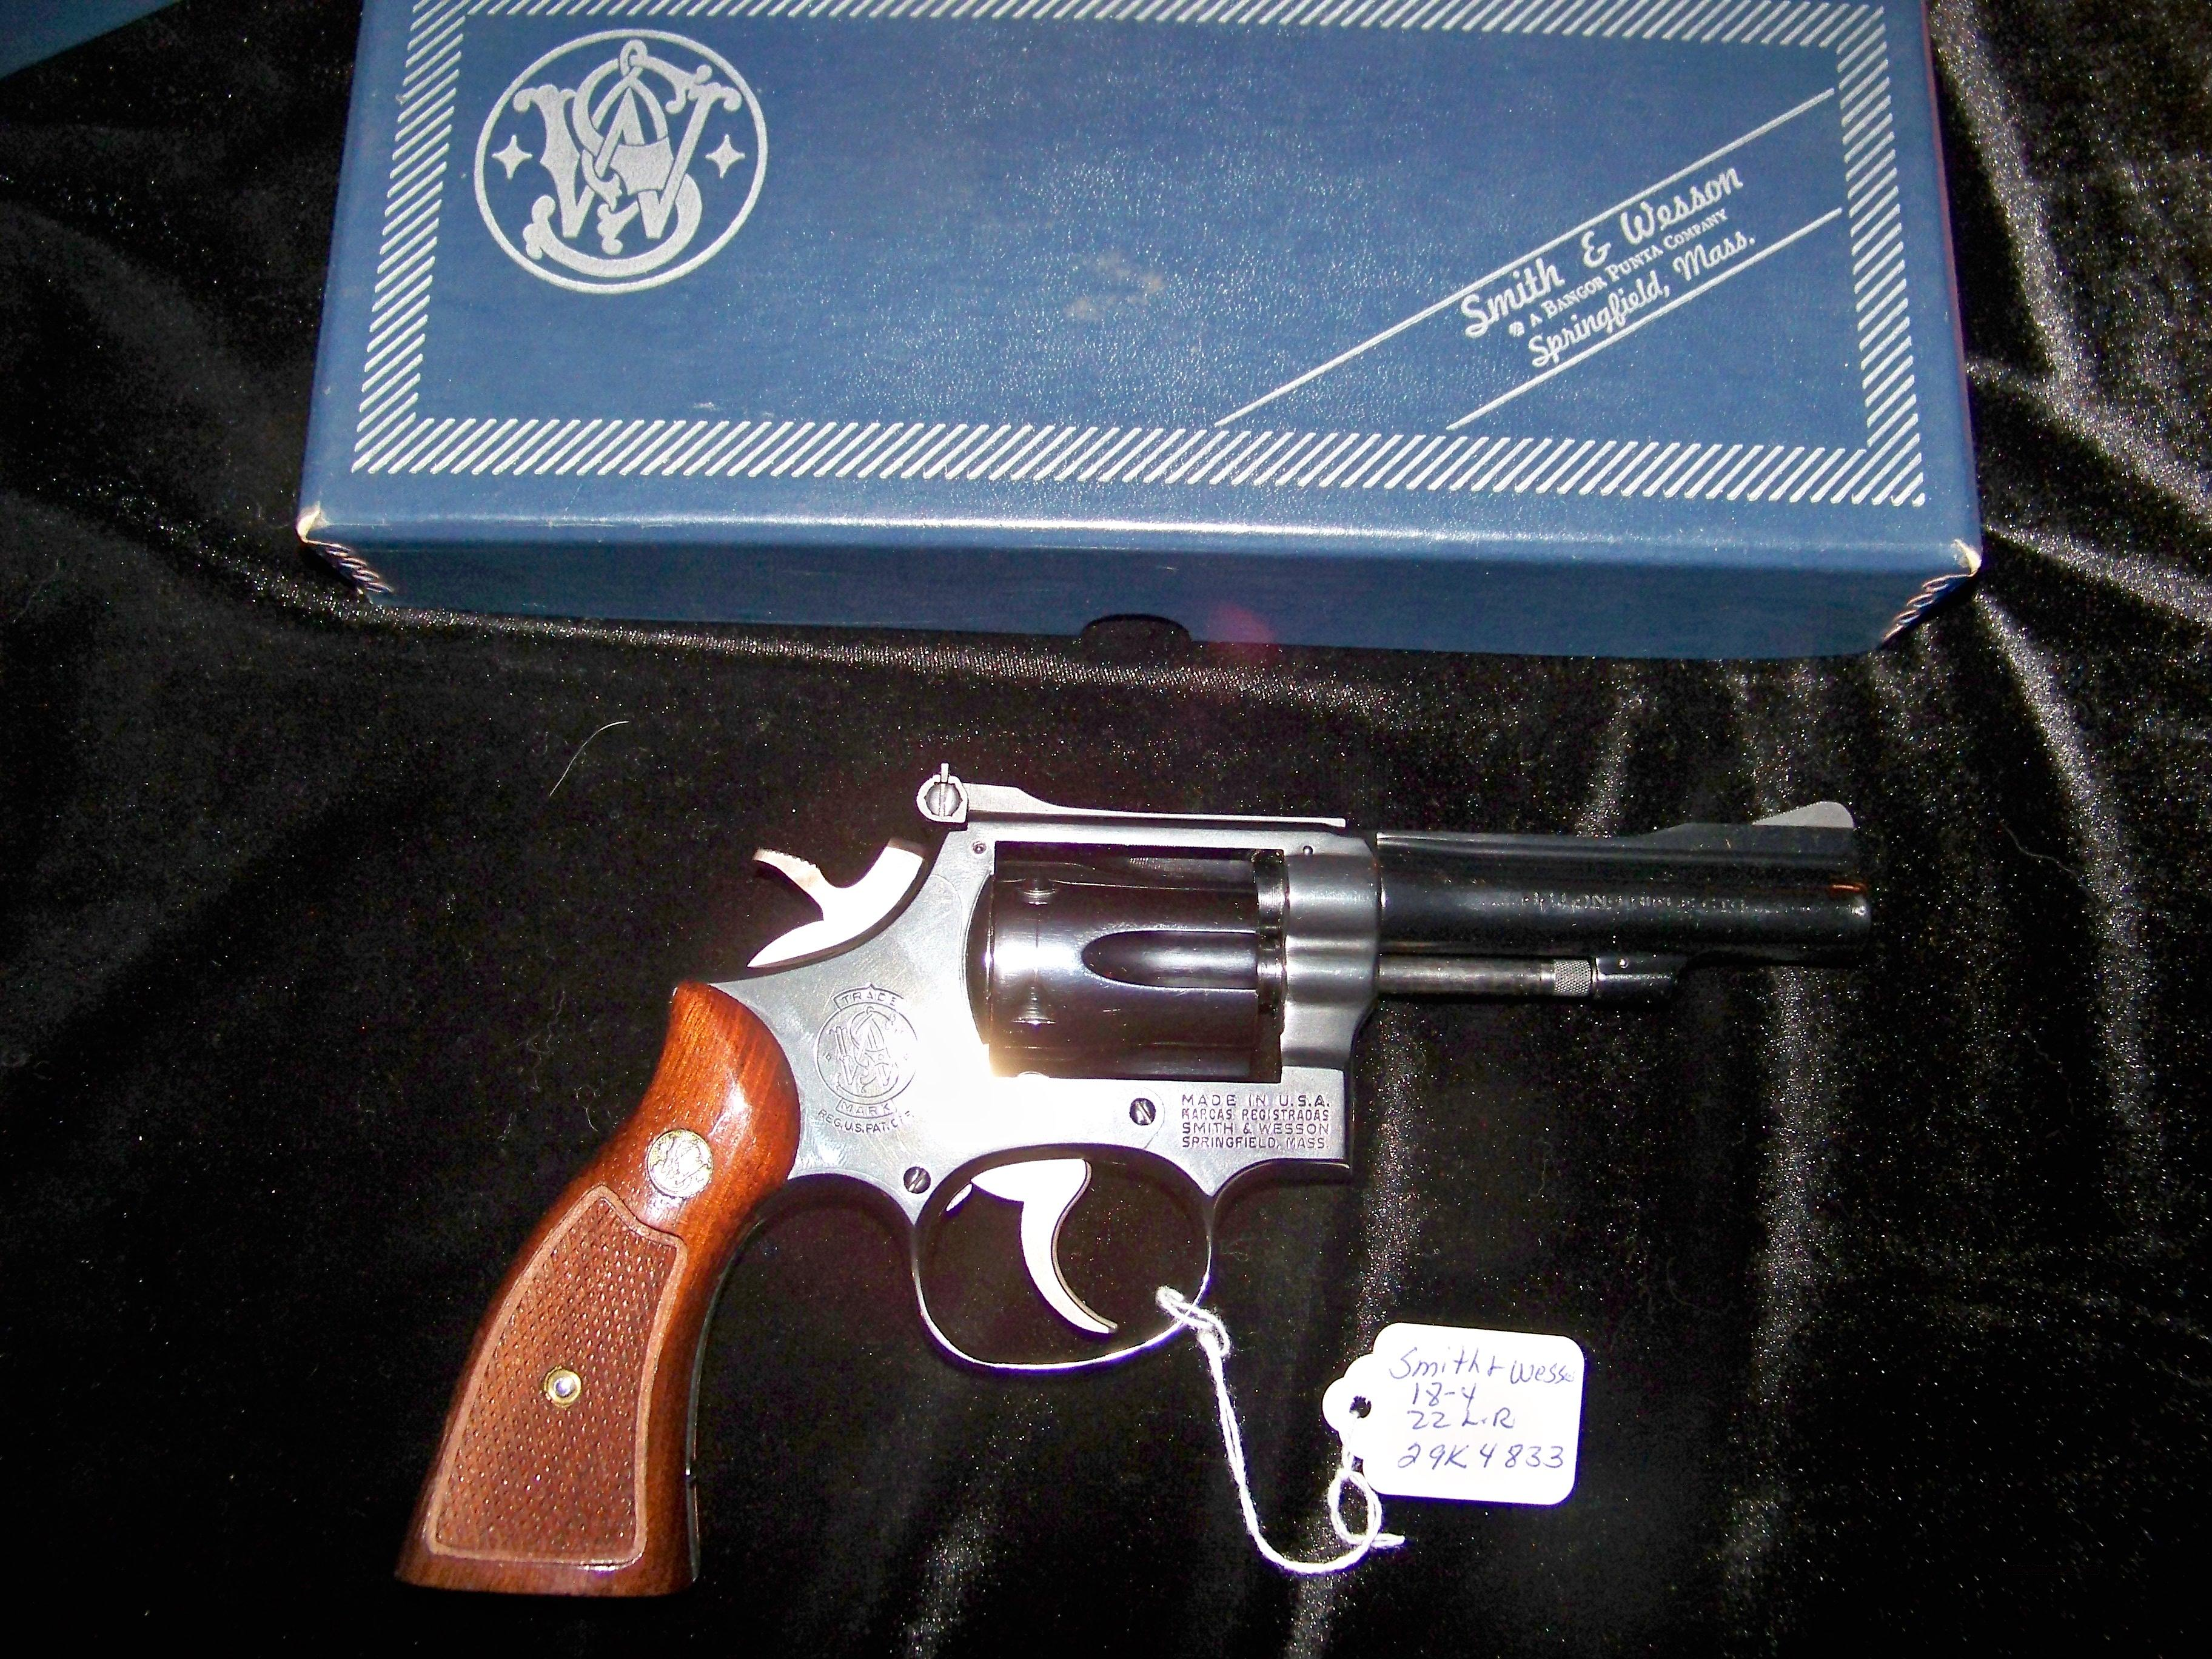 SMITH & WESSON MODEL 18-4 22 LONG RIFLE  Guns > Pistols > Smith & Wesson Revolvers > Full Frame Revolver